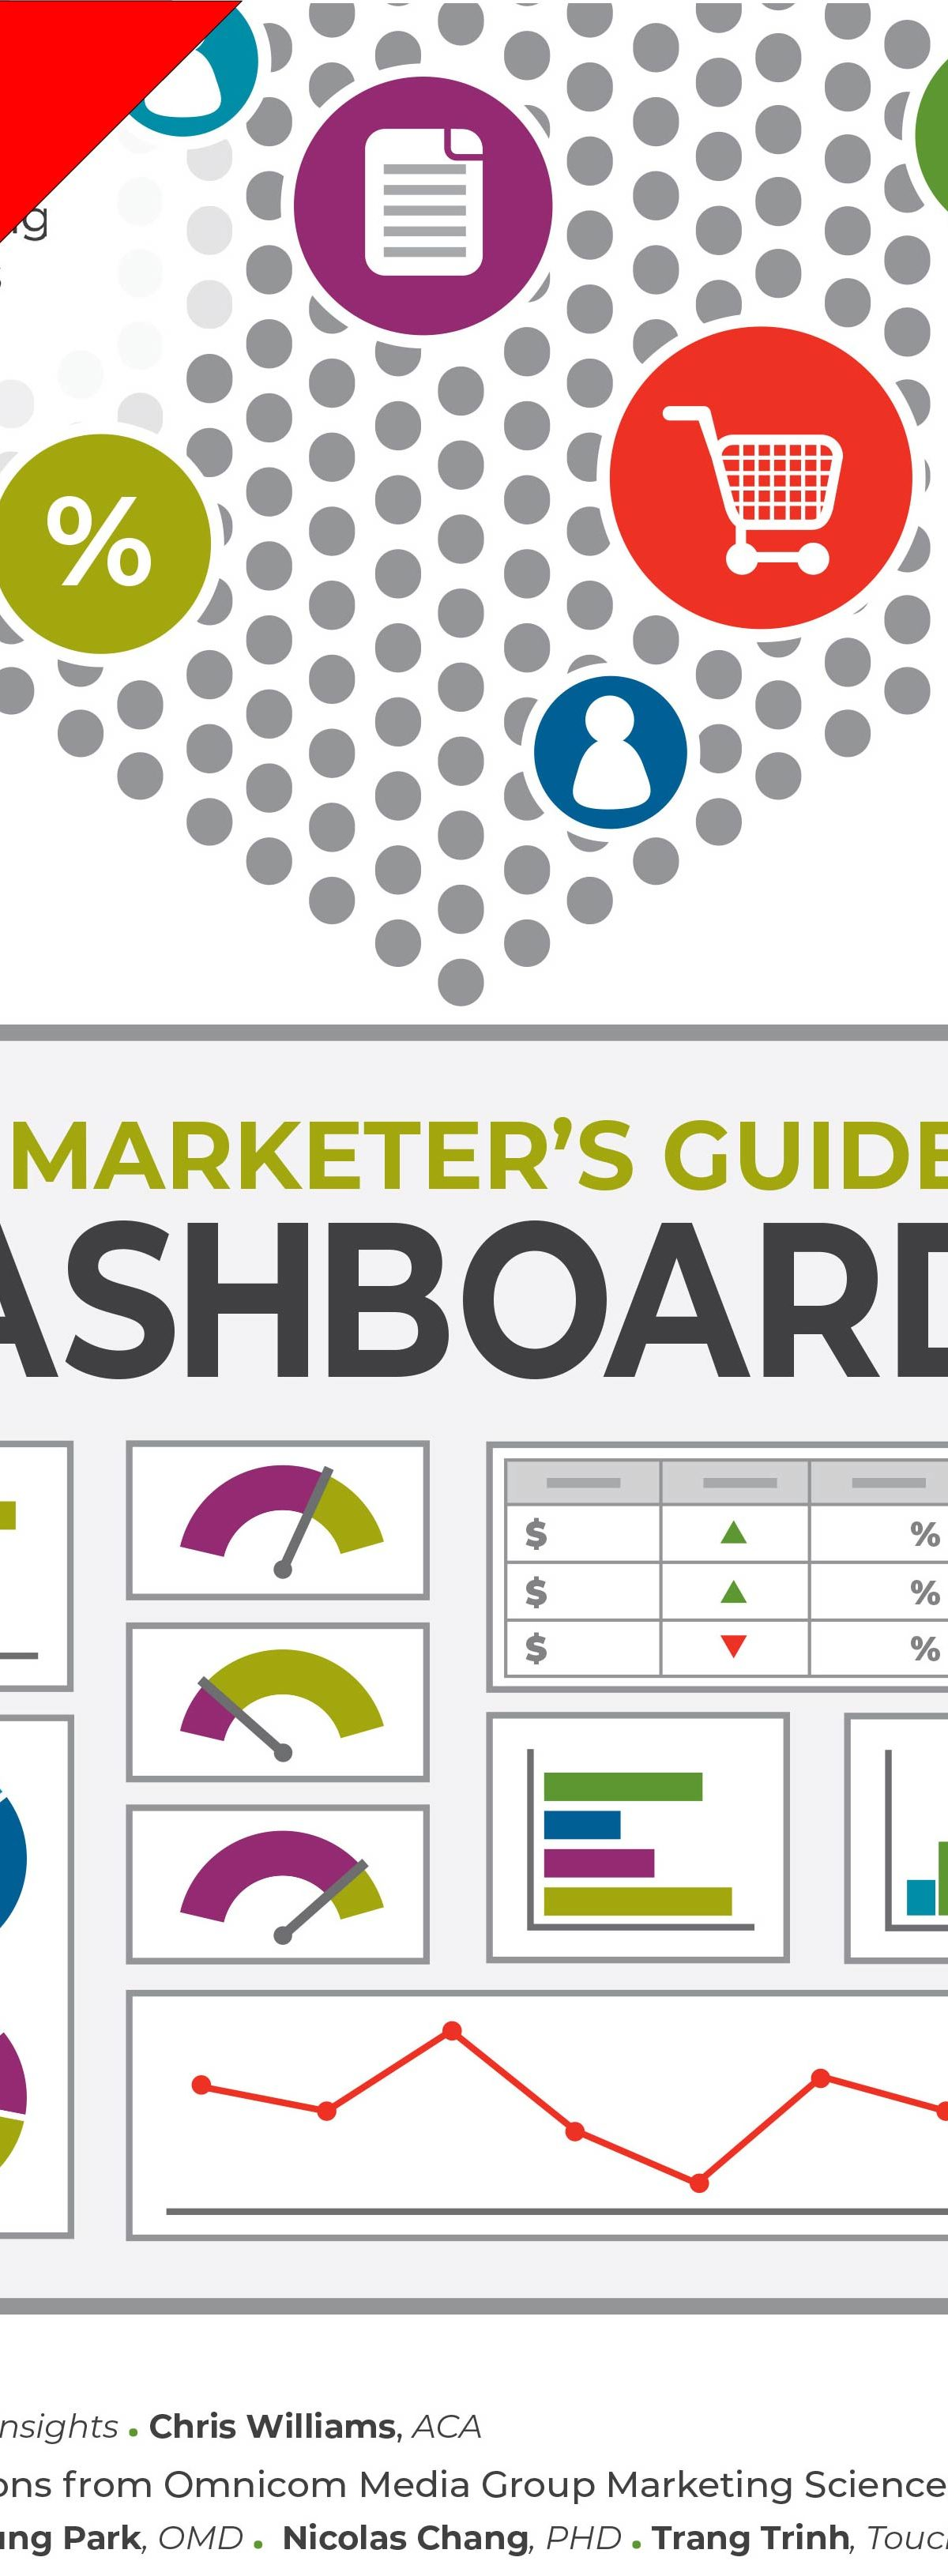 CThe marketer's guide to dashboards